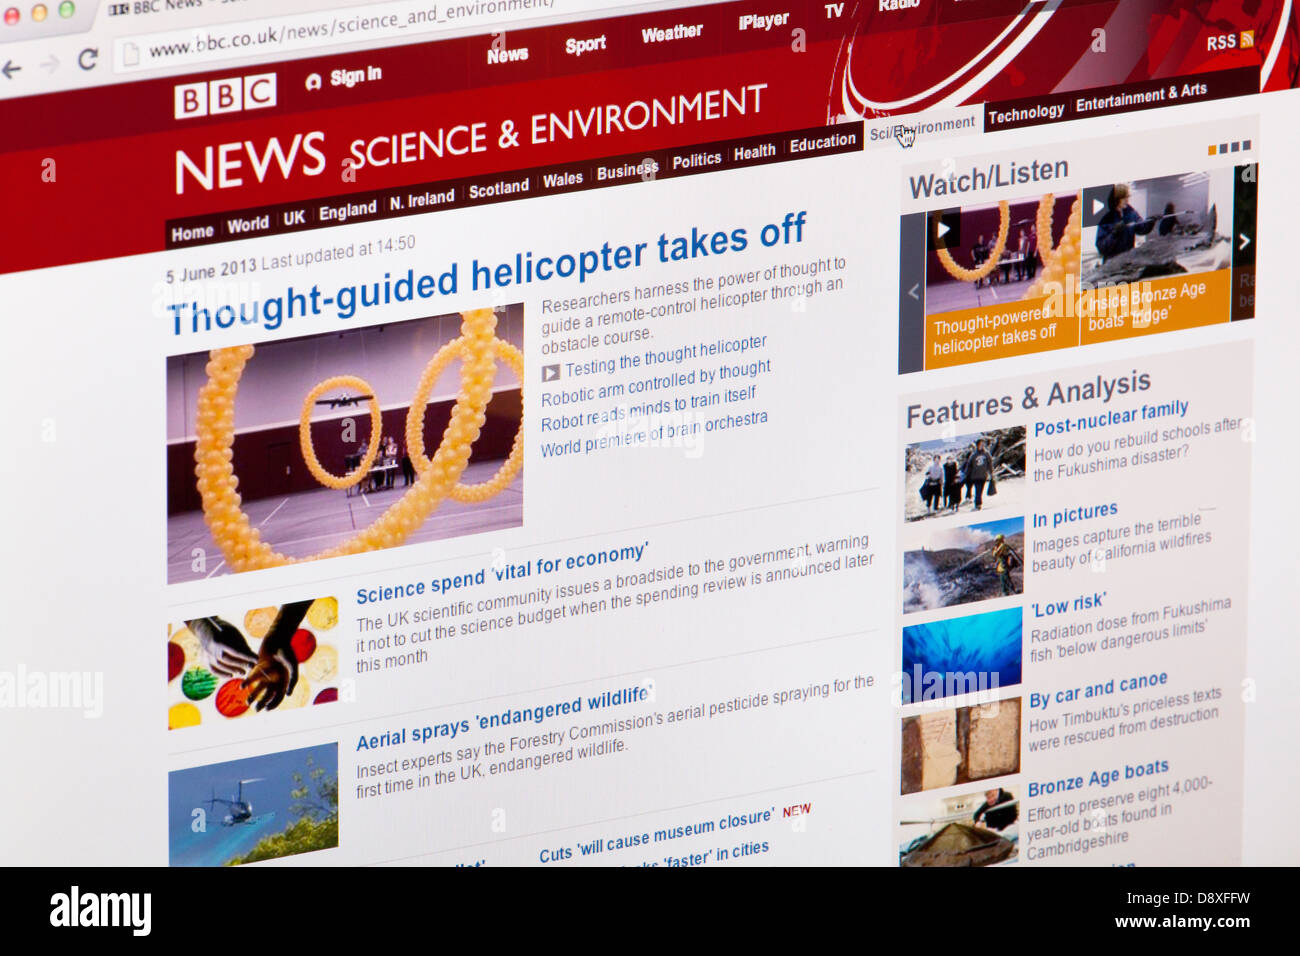 BBC News Science and Environment home page website or web page on a laptop screen or computer monitor - Stock Image